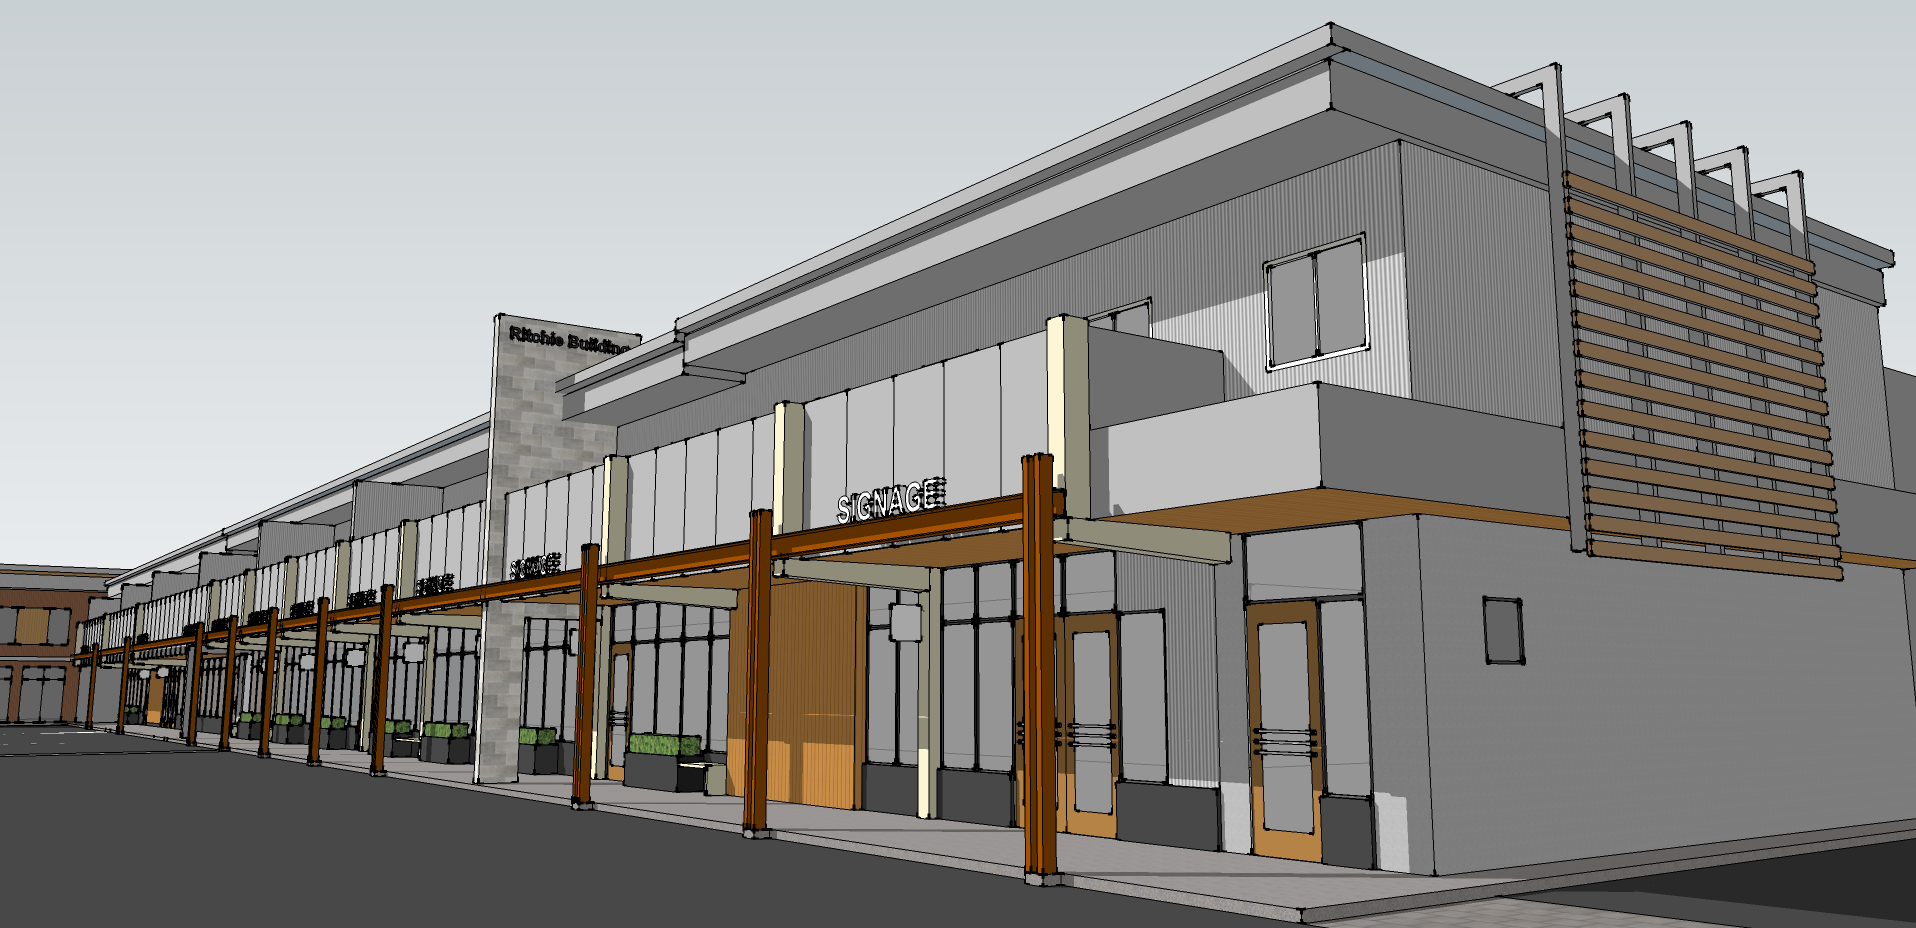 Ritchie Building Facade Improvement – Concept 01